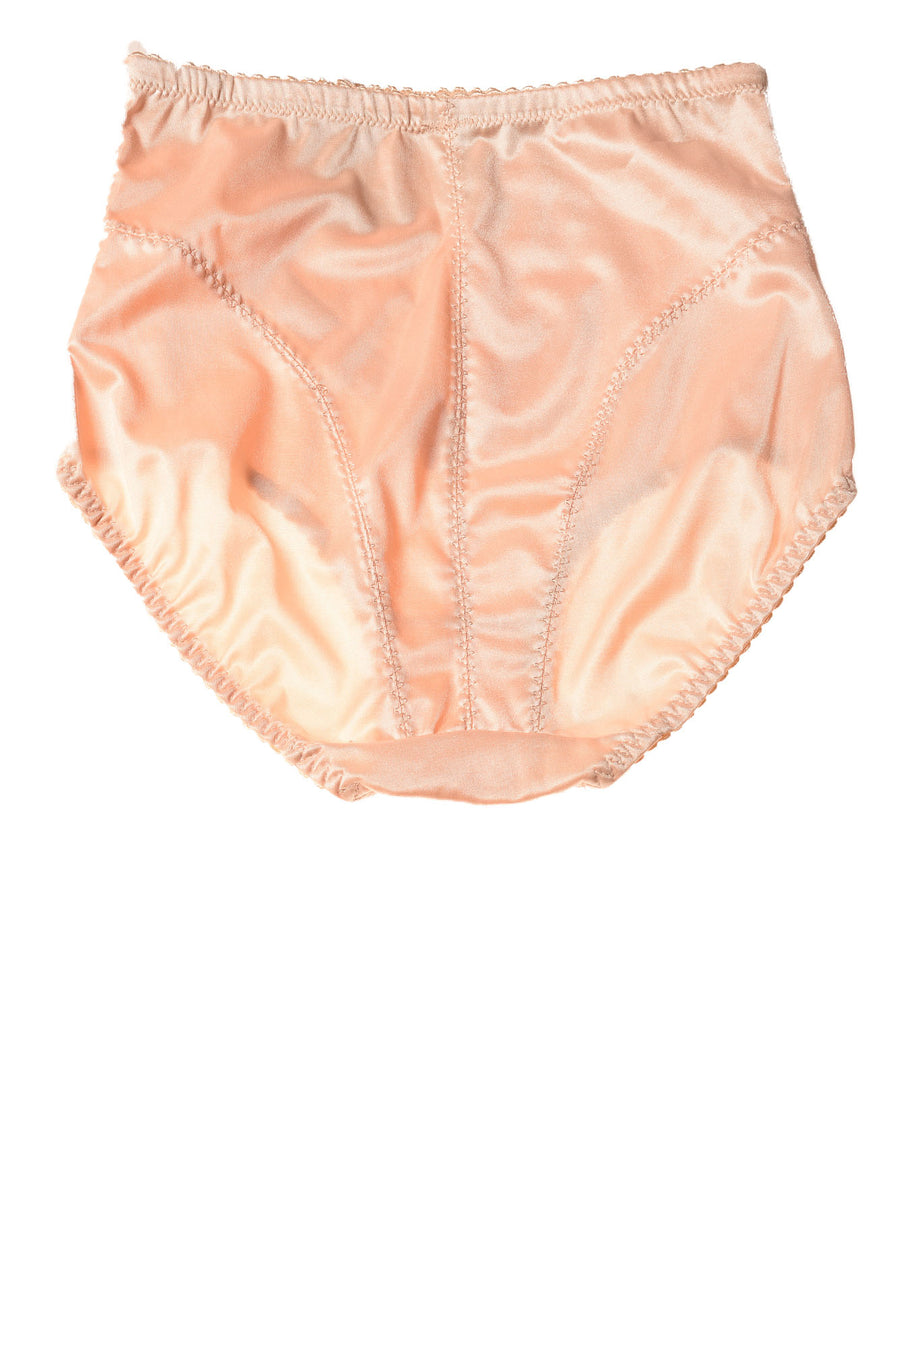 NEW Donna Loren Women's Shapewear Panties X-Large Tan